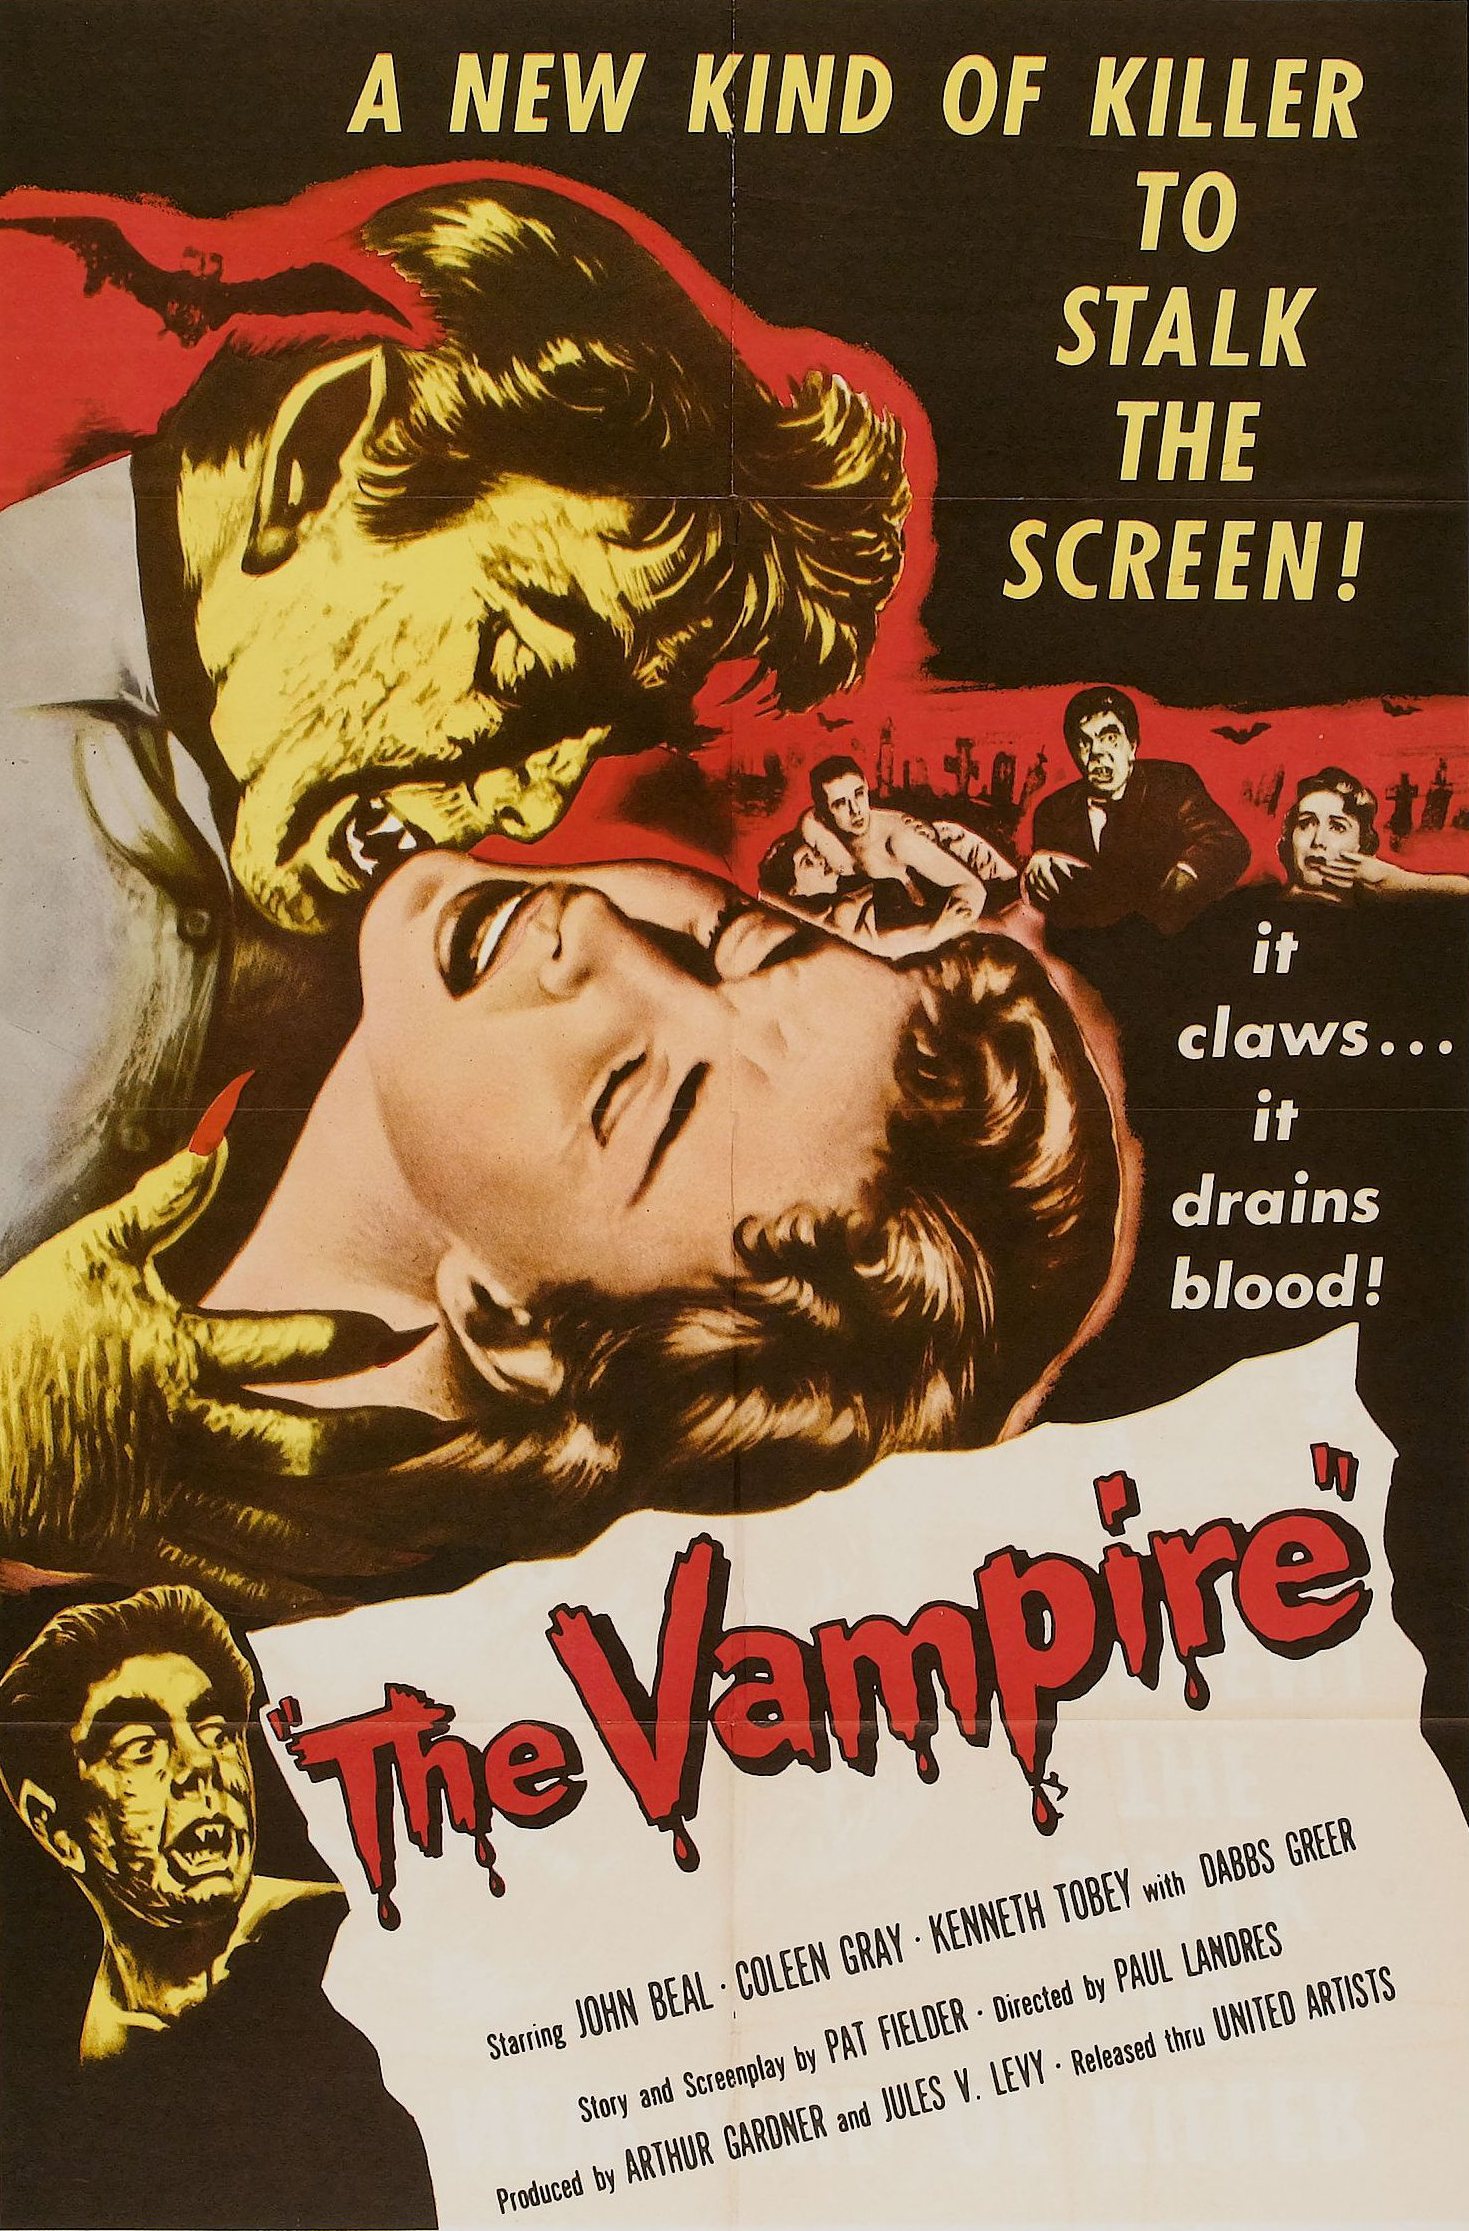 John Beal and Coleen Gray in The Vampire (1957)